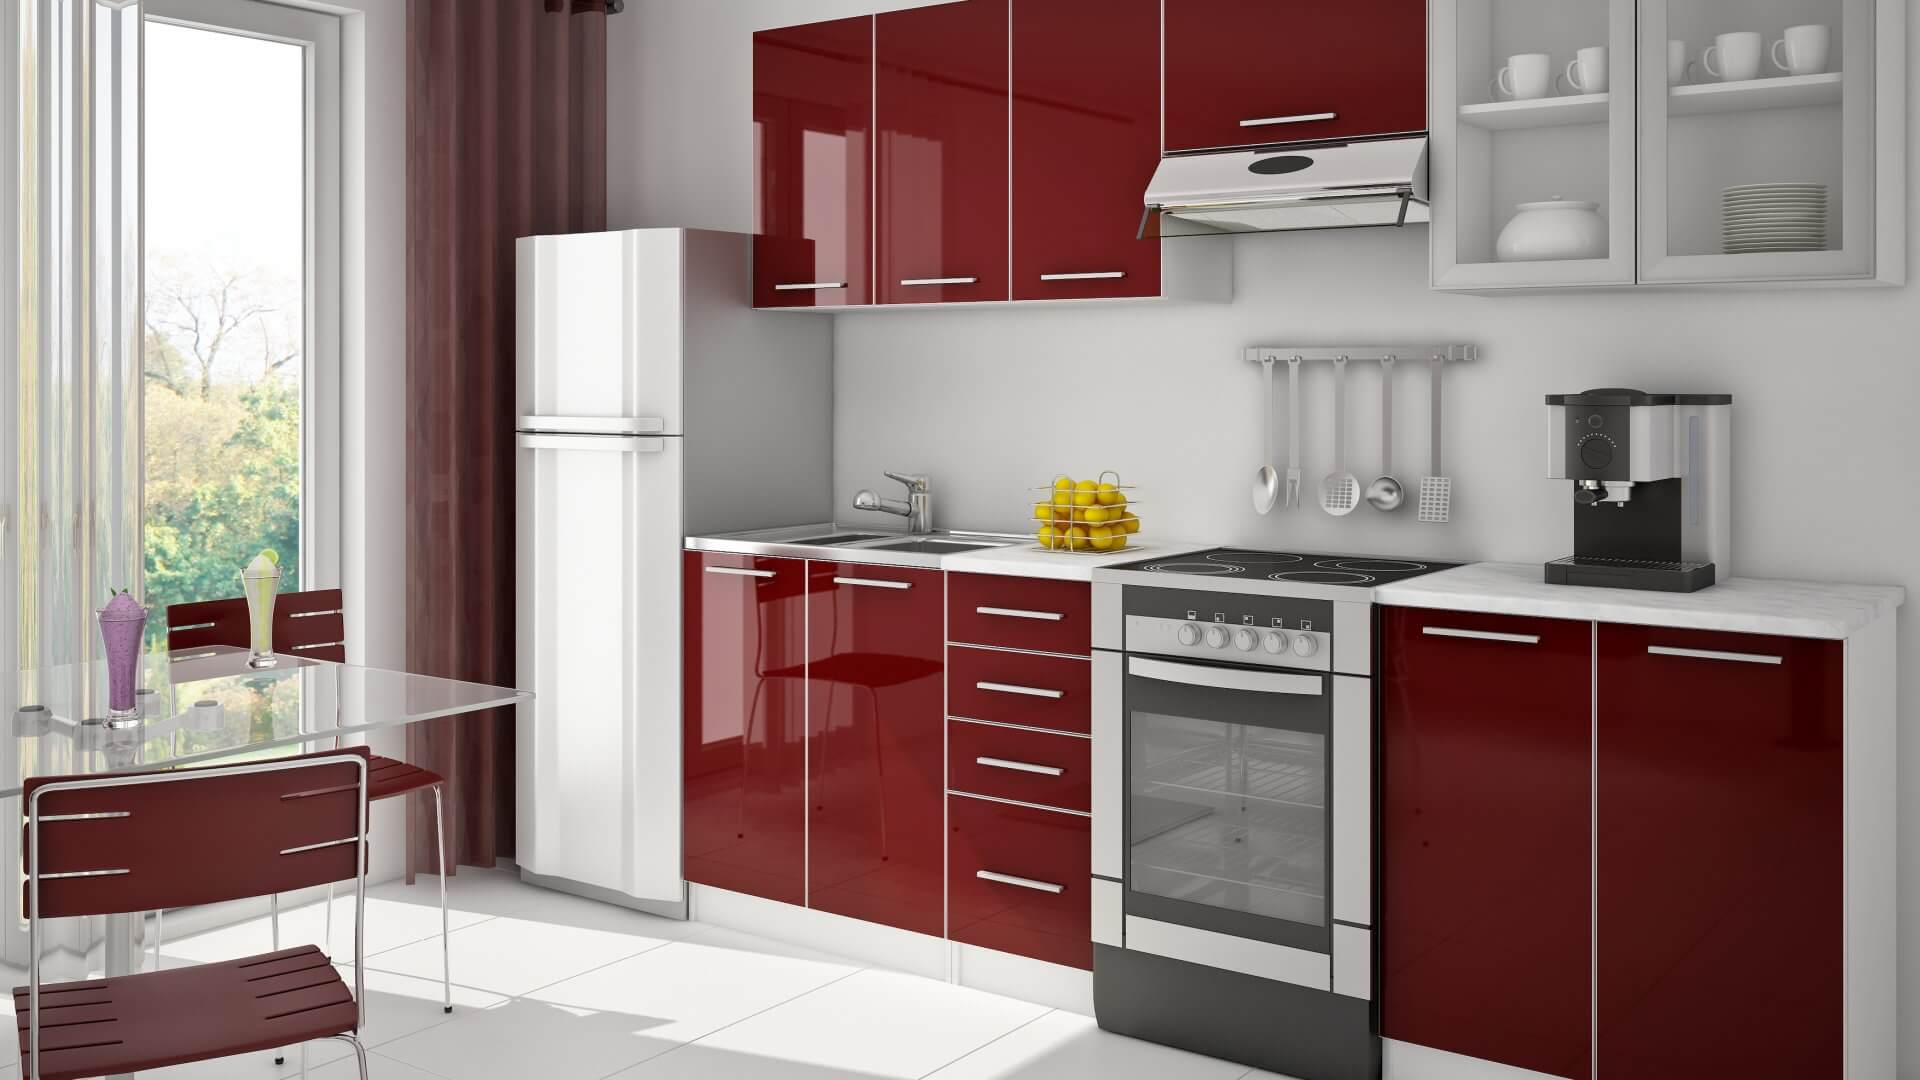 Kitchen Design 3d Model 65 Ch